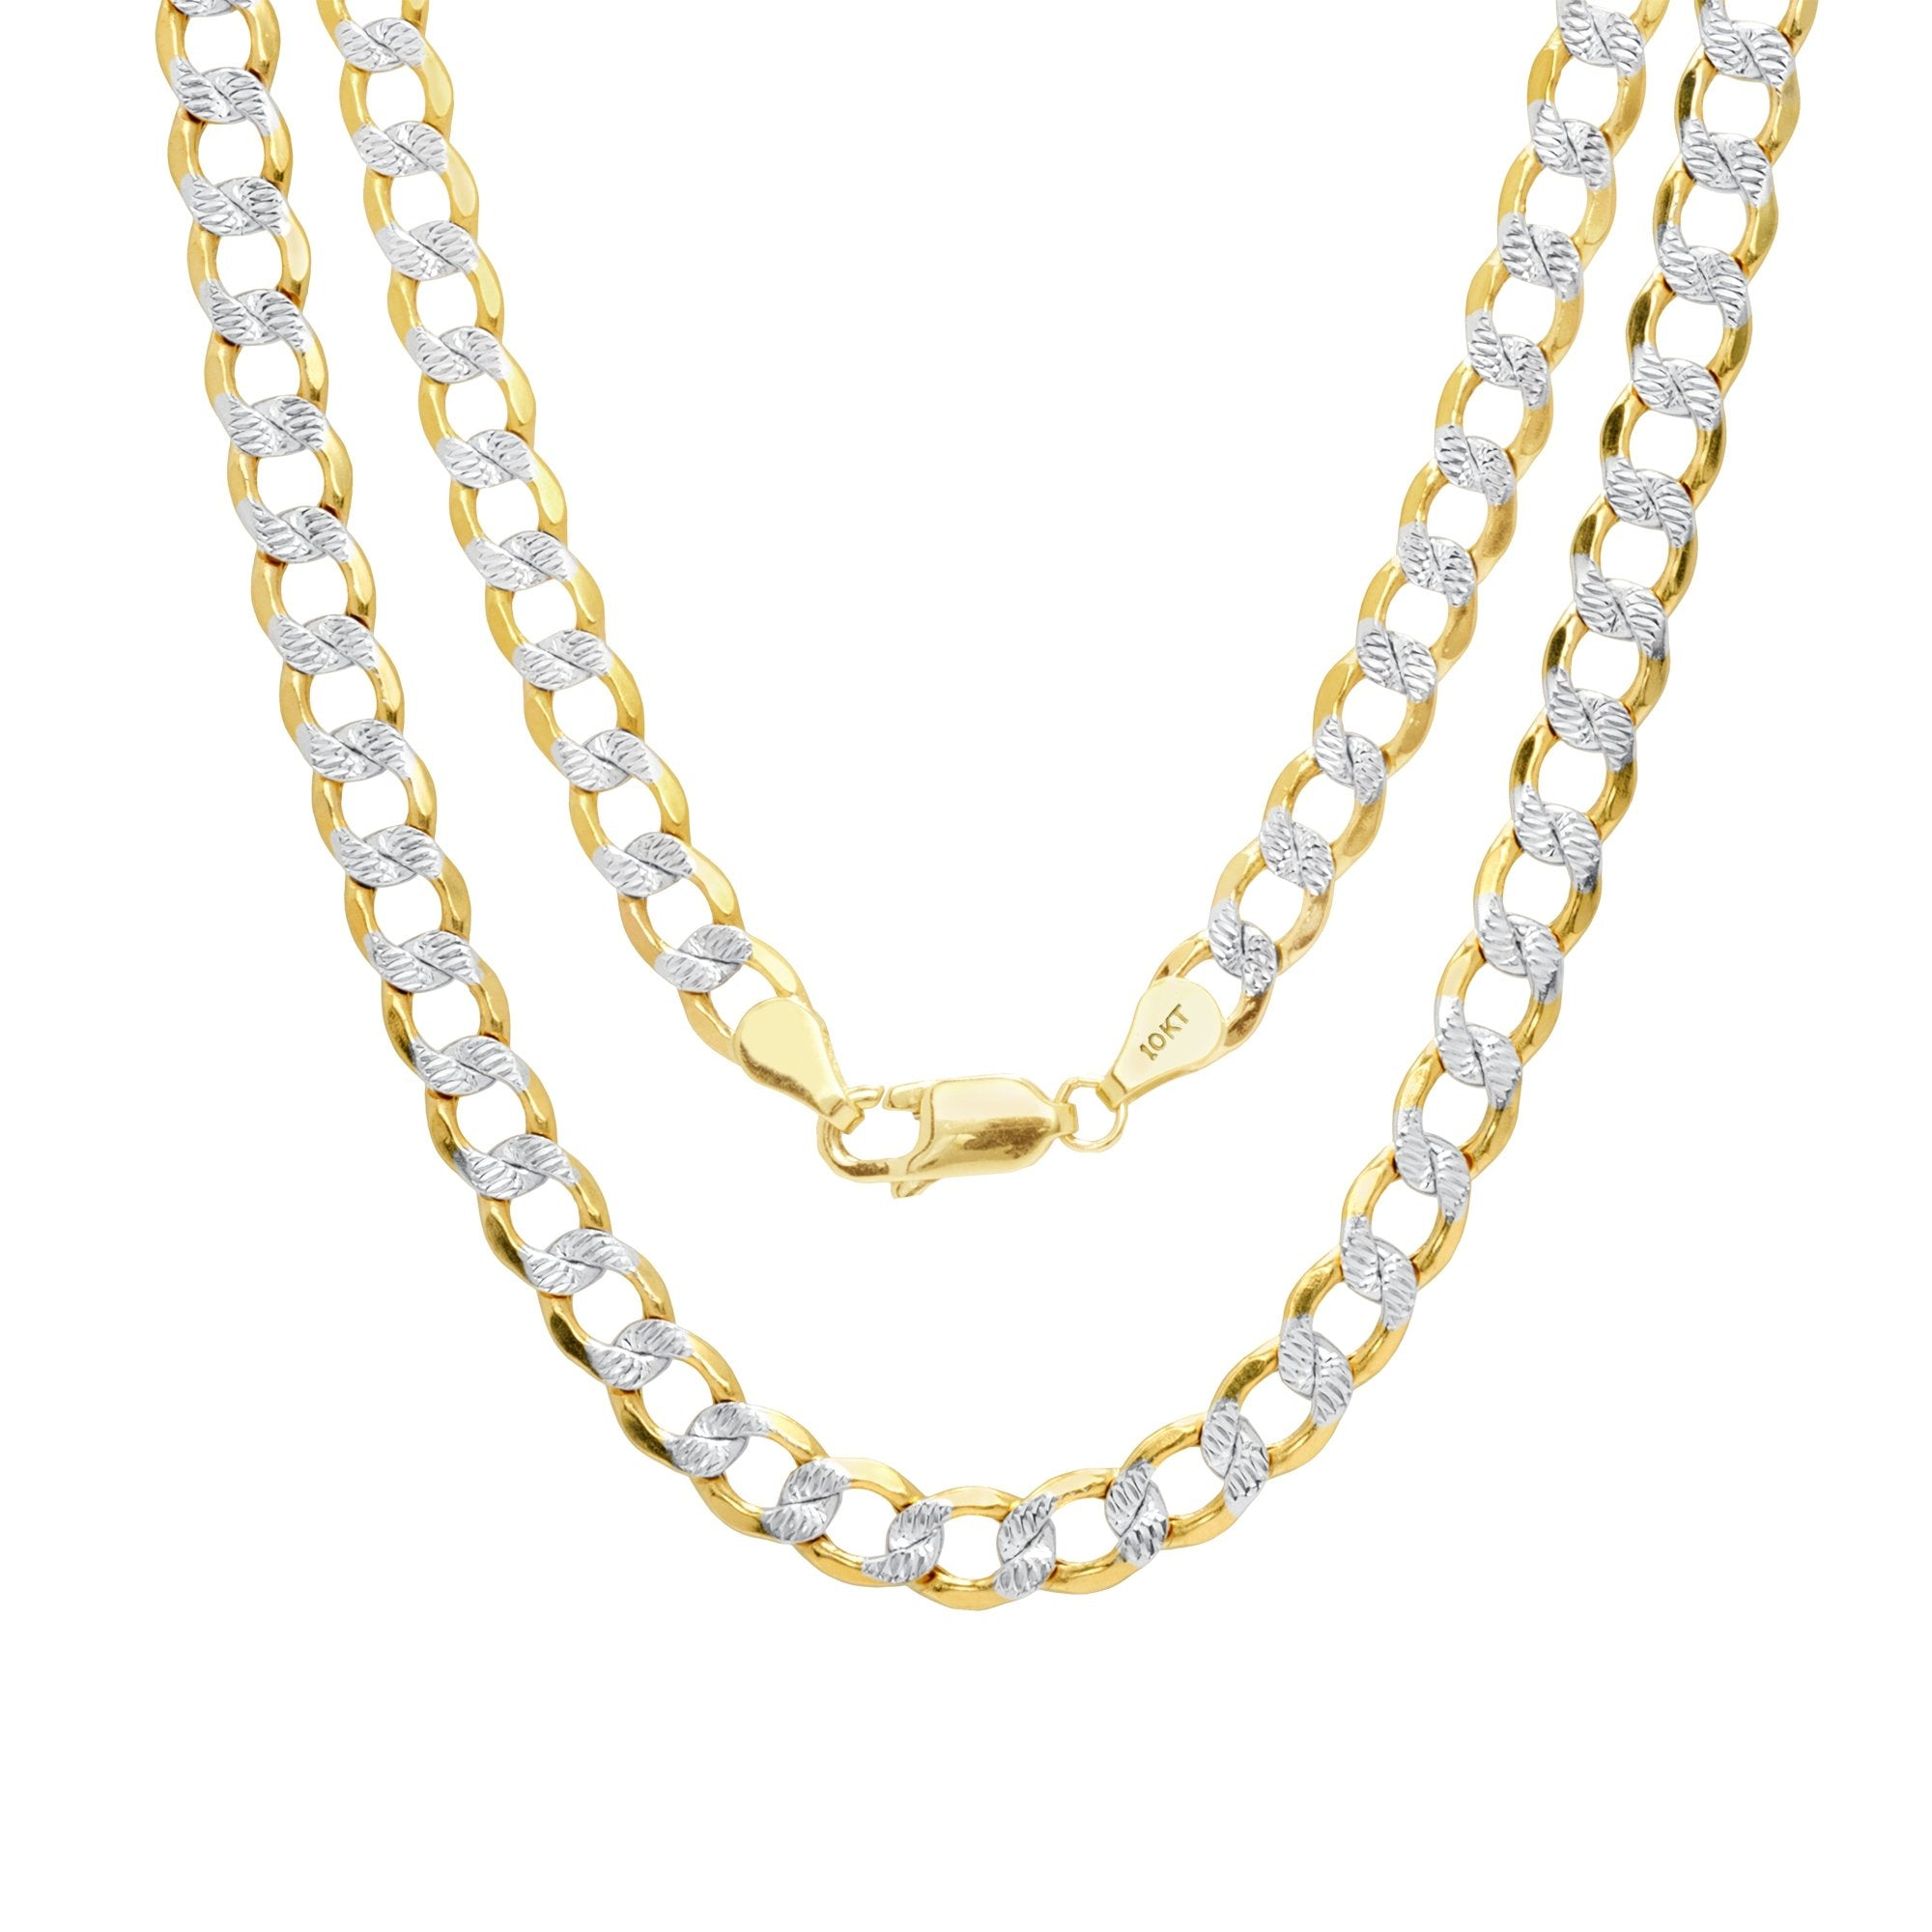 "7.5MM Yellow Gold Flat Pave Curb Chain .925 Solid Sterling Silver 8""- 32"" Inches"